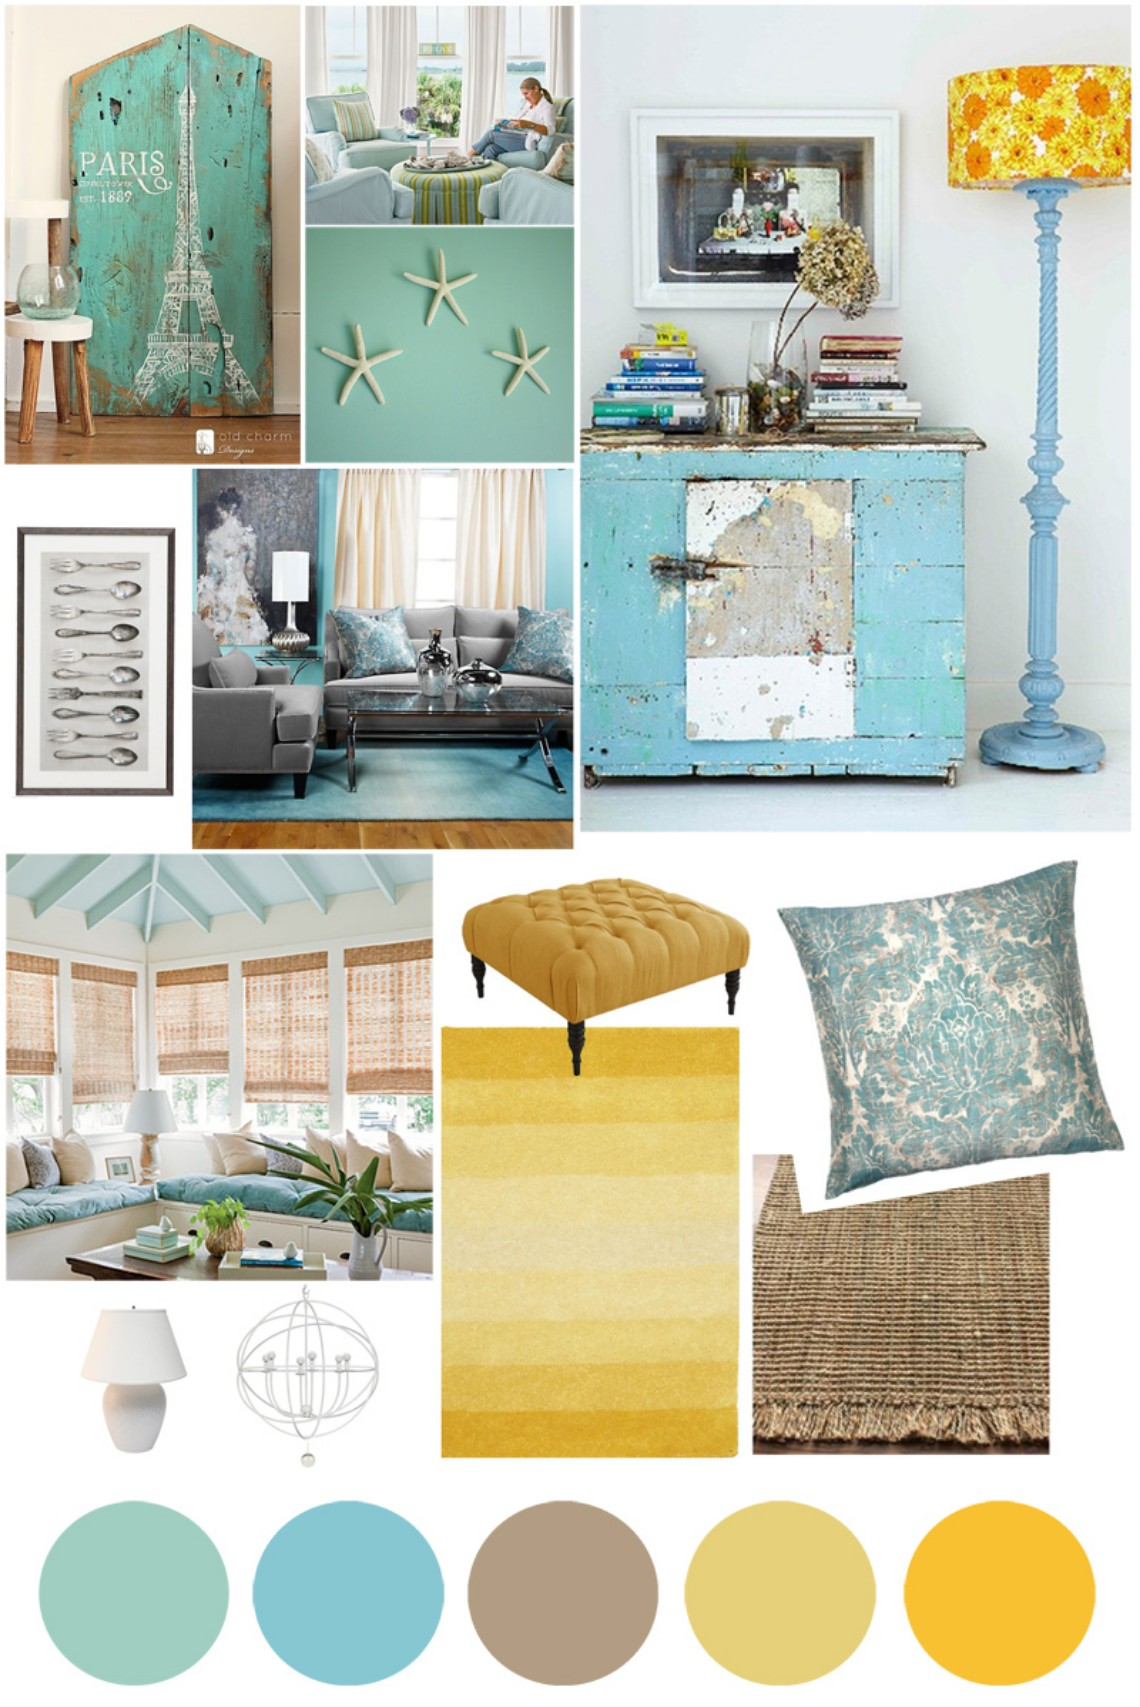 Mood Board: The New Summer Trends in Interior Design summer trends Mood Board: The New Summer Trends in Interior Design Mood Board The New Summer Trends in Interior Design